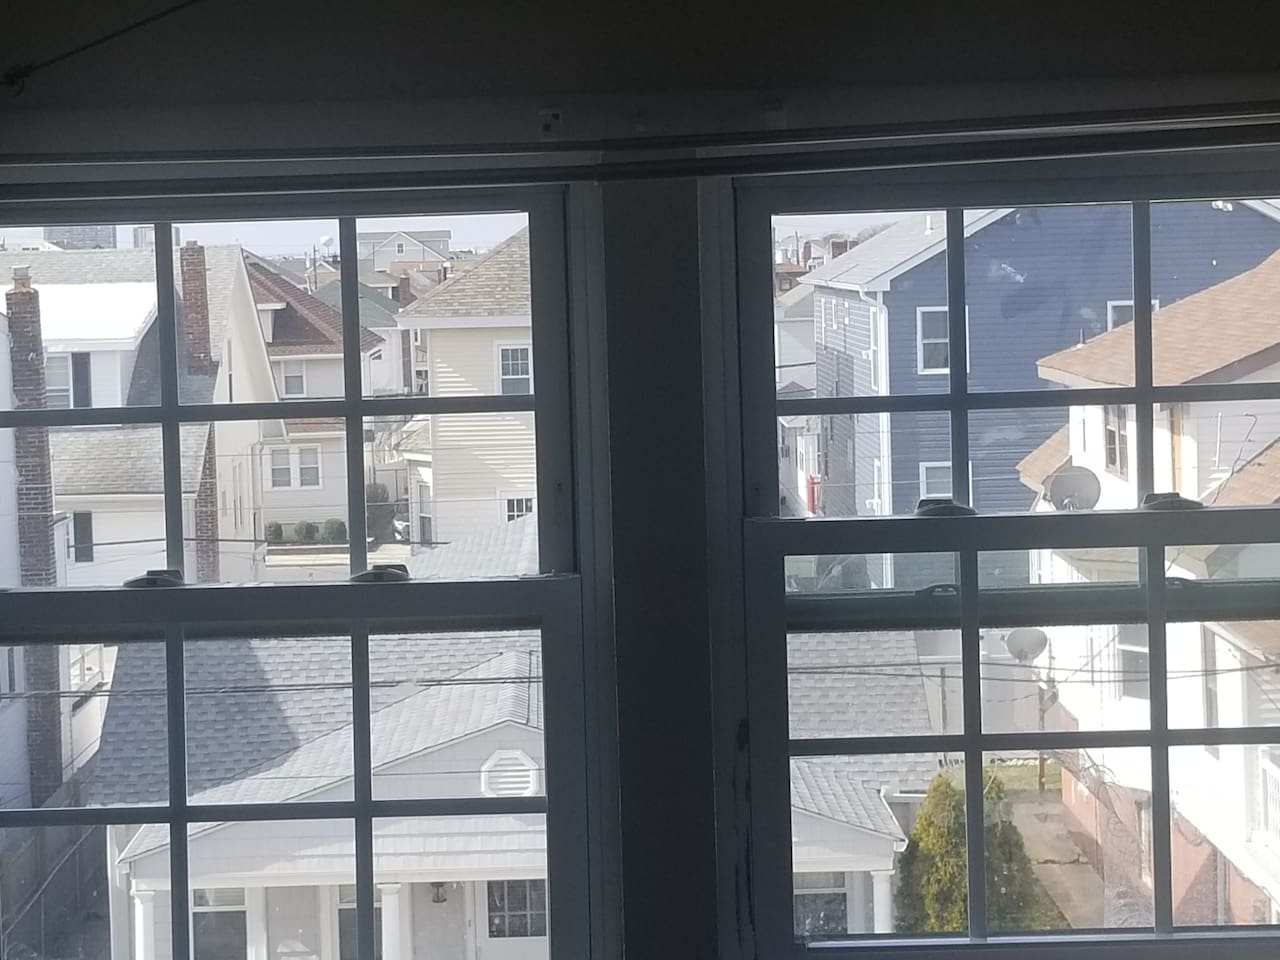 Two giant side by side windows overlooking beautiful ventnor city